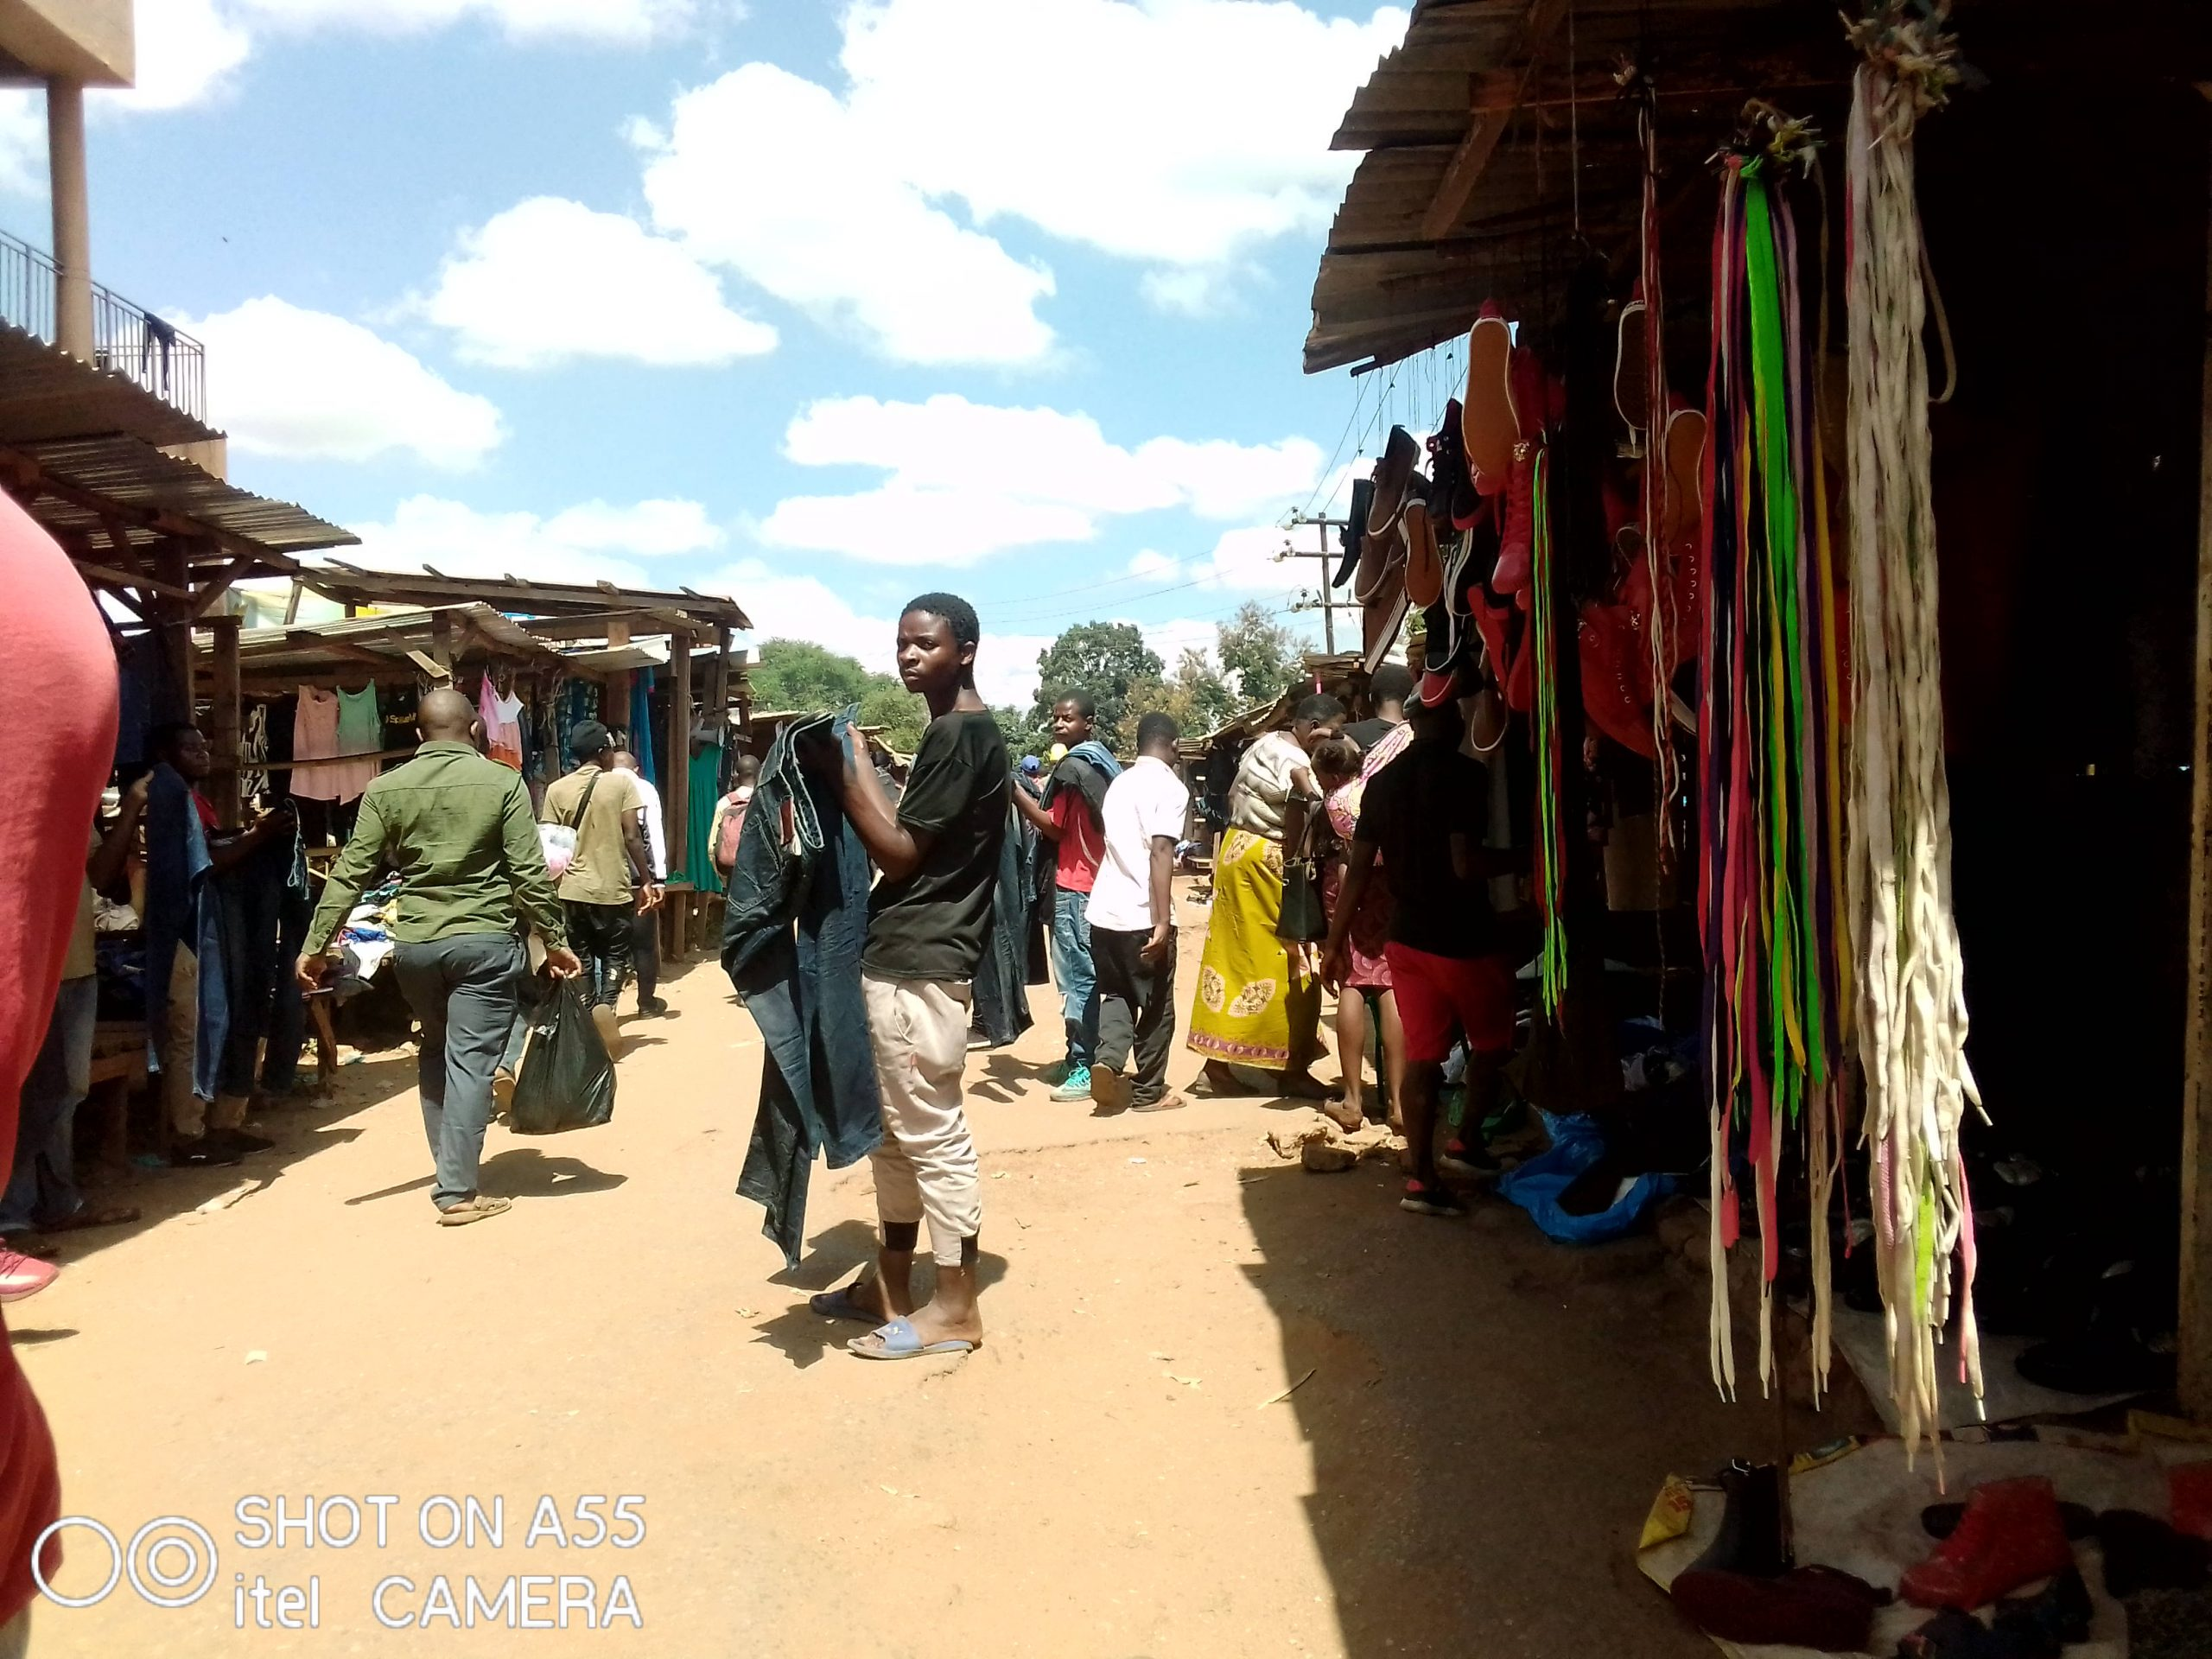 For most Malawians, staying at home during COVID-19 pandemic equals staying hungry